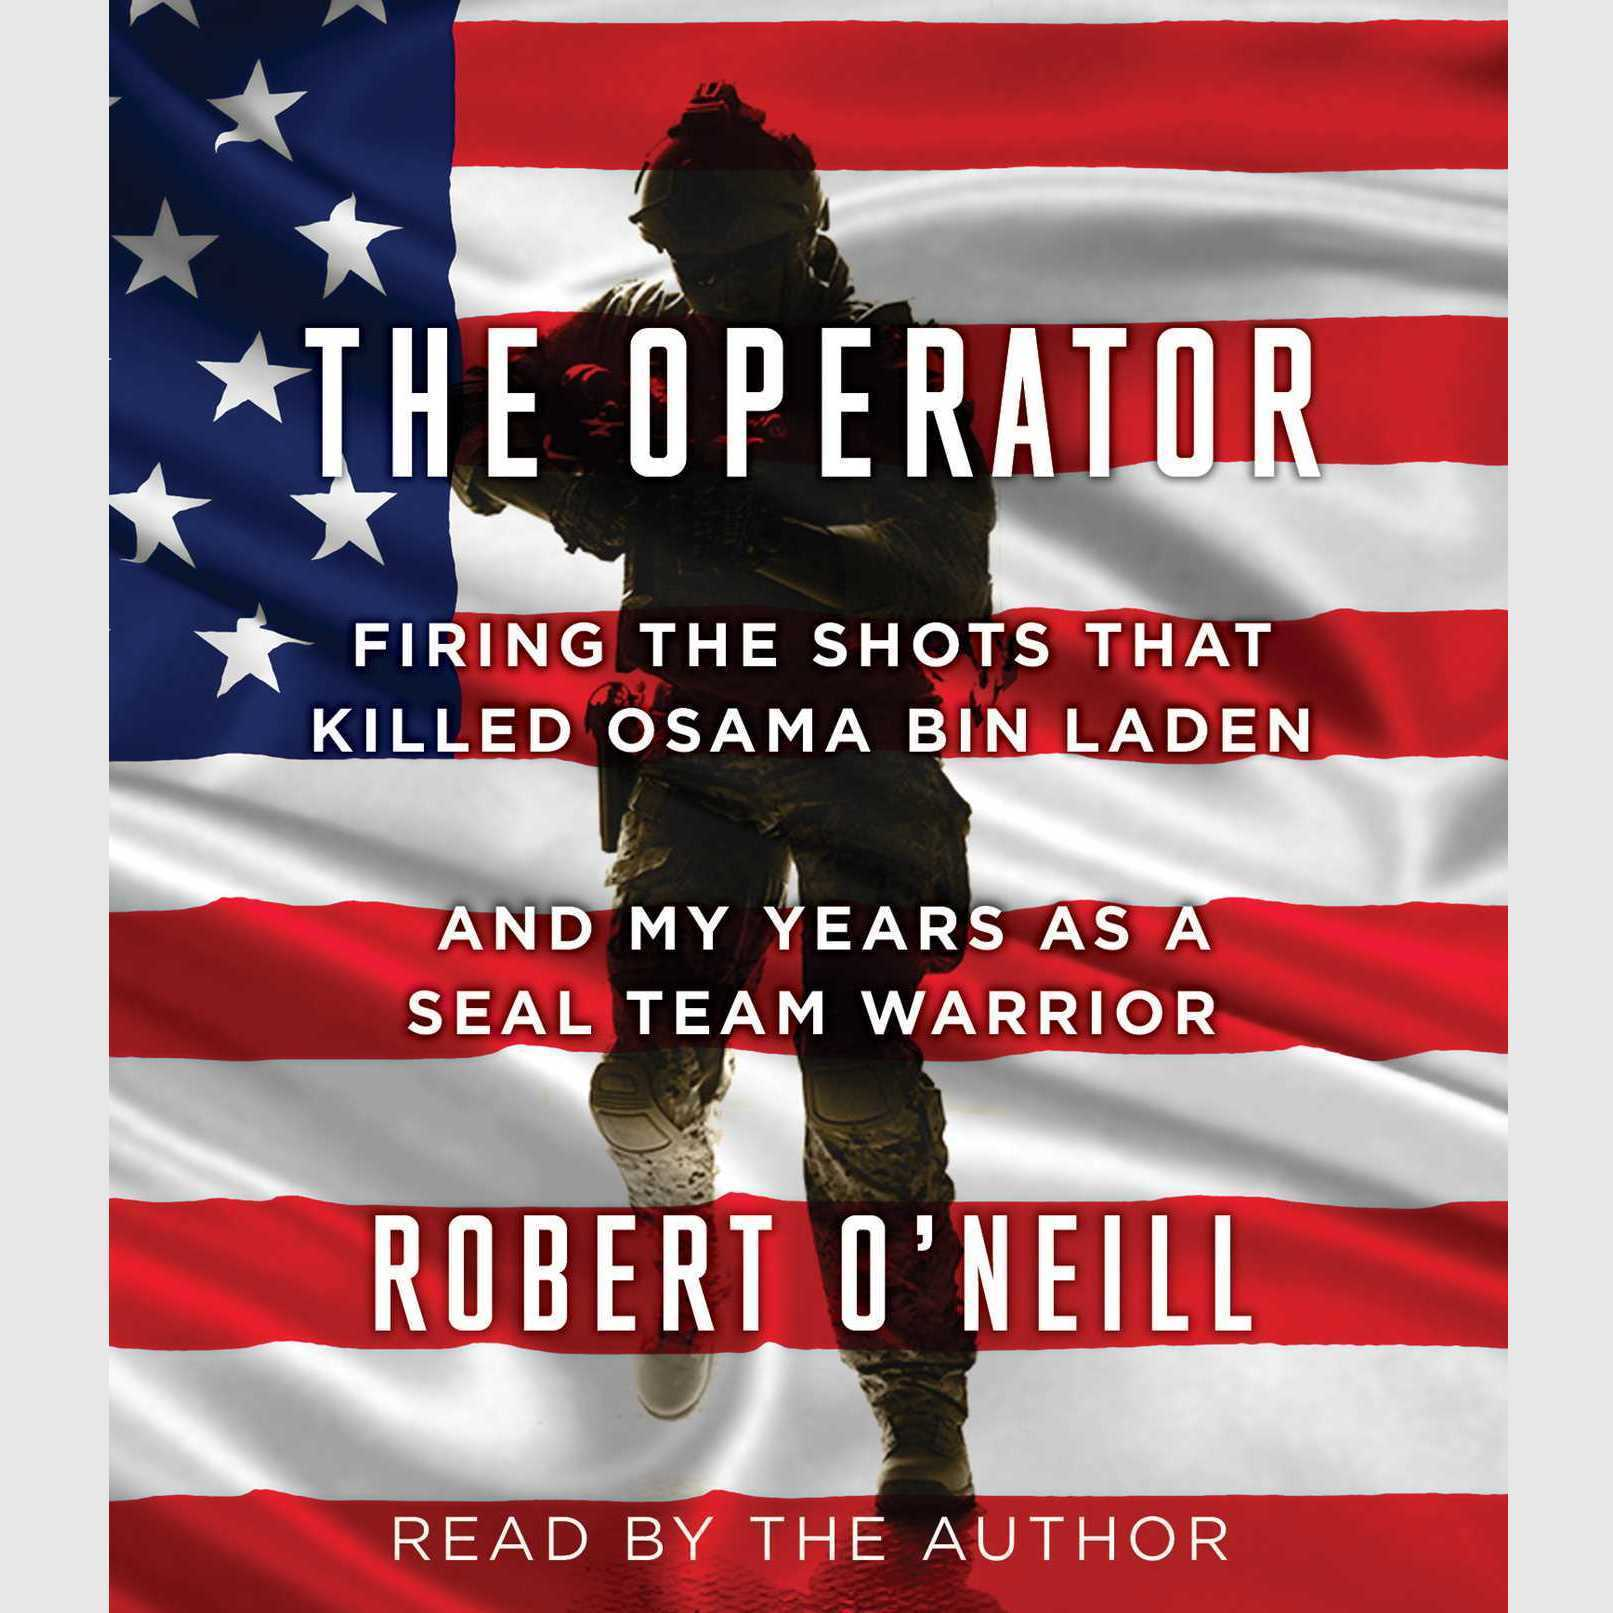 Printable The Operator: Firing the Shots that Killed Osama bin Laden and My Years as a SEAL Team Warrior Audiobook Cover Art